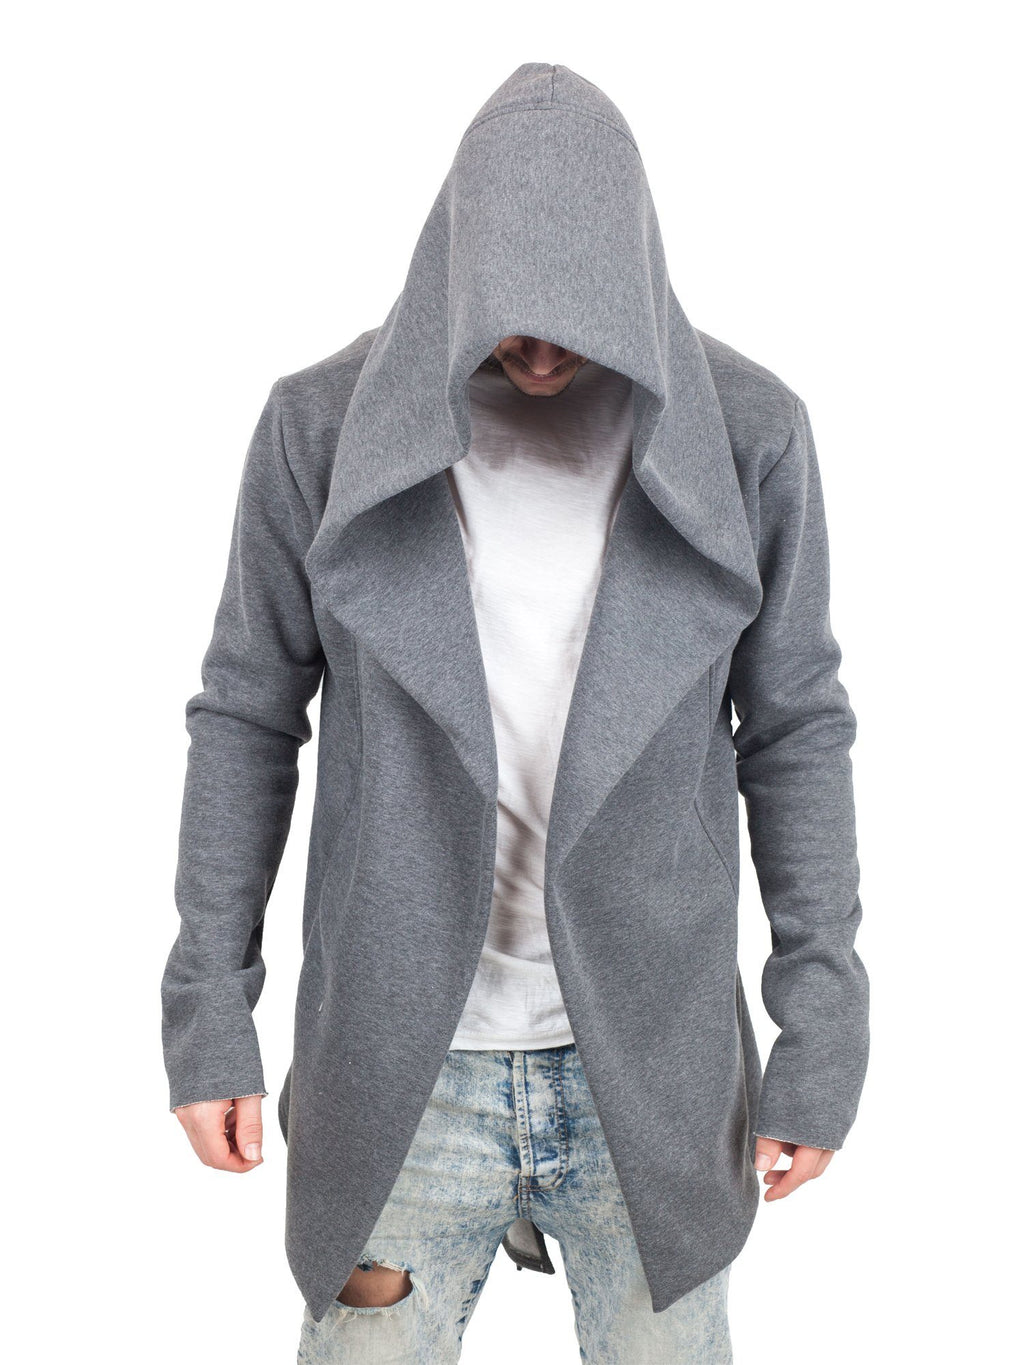 TheG First Cardigan 0.5 // gray